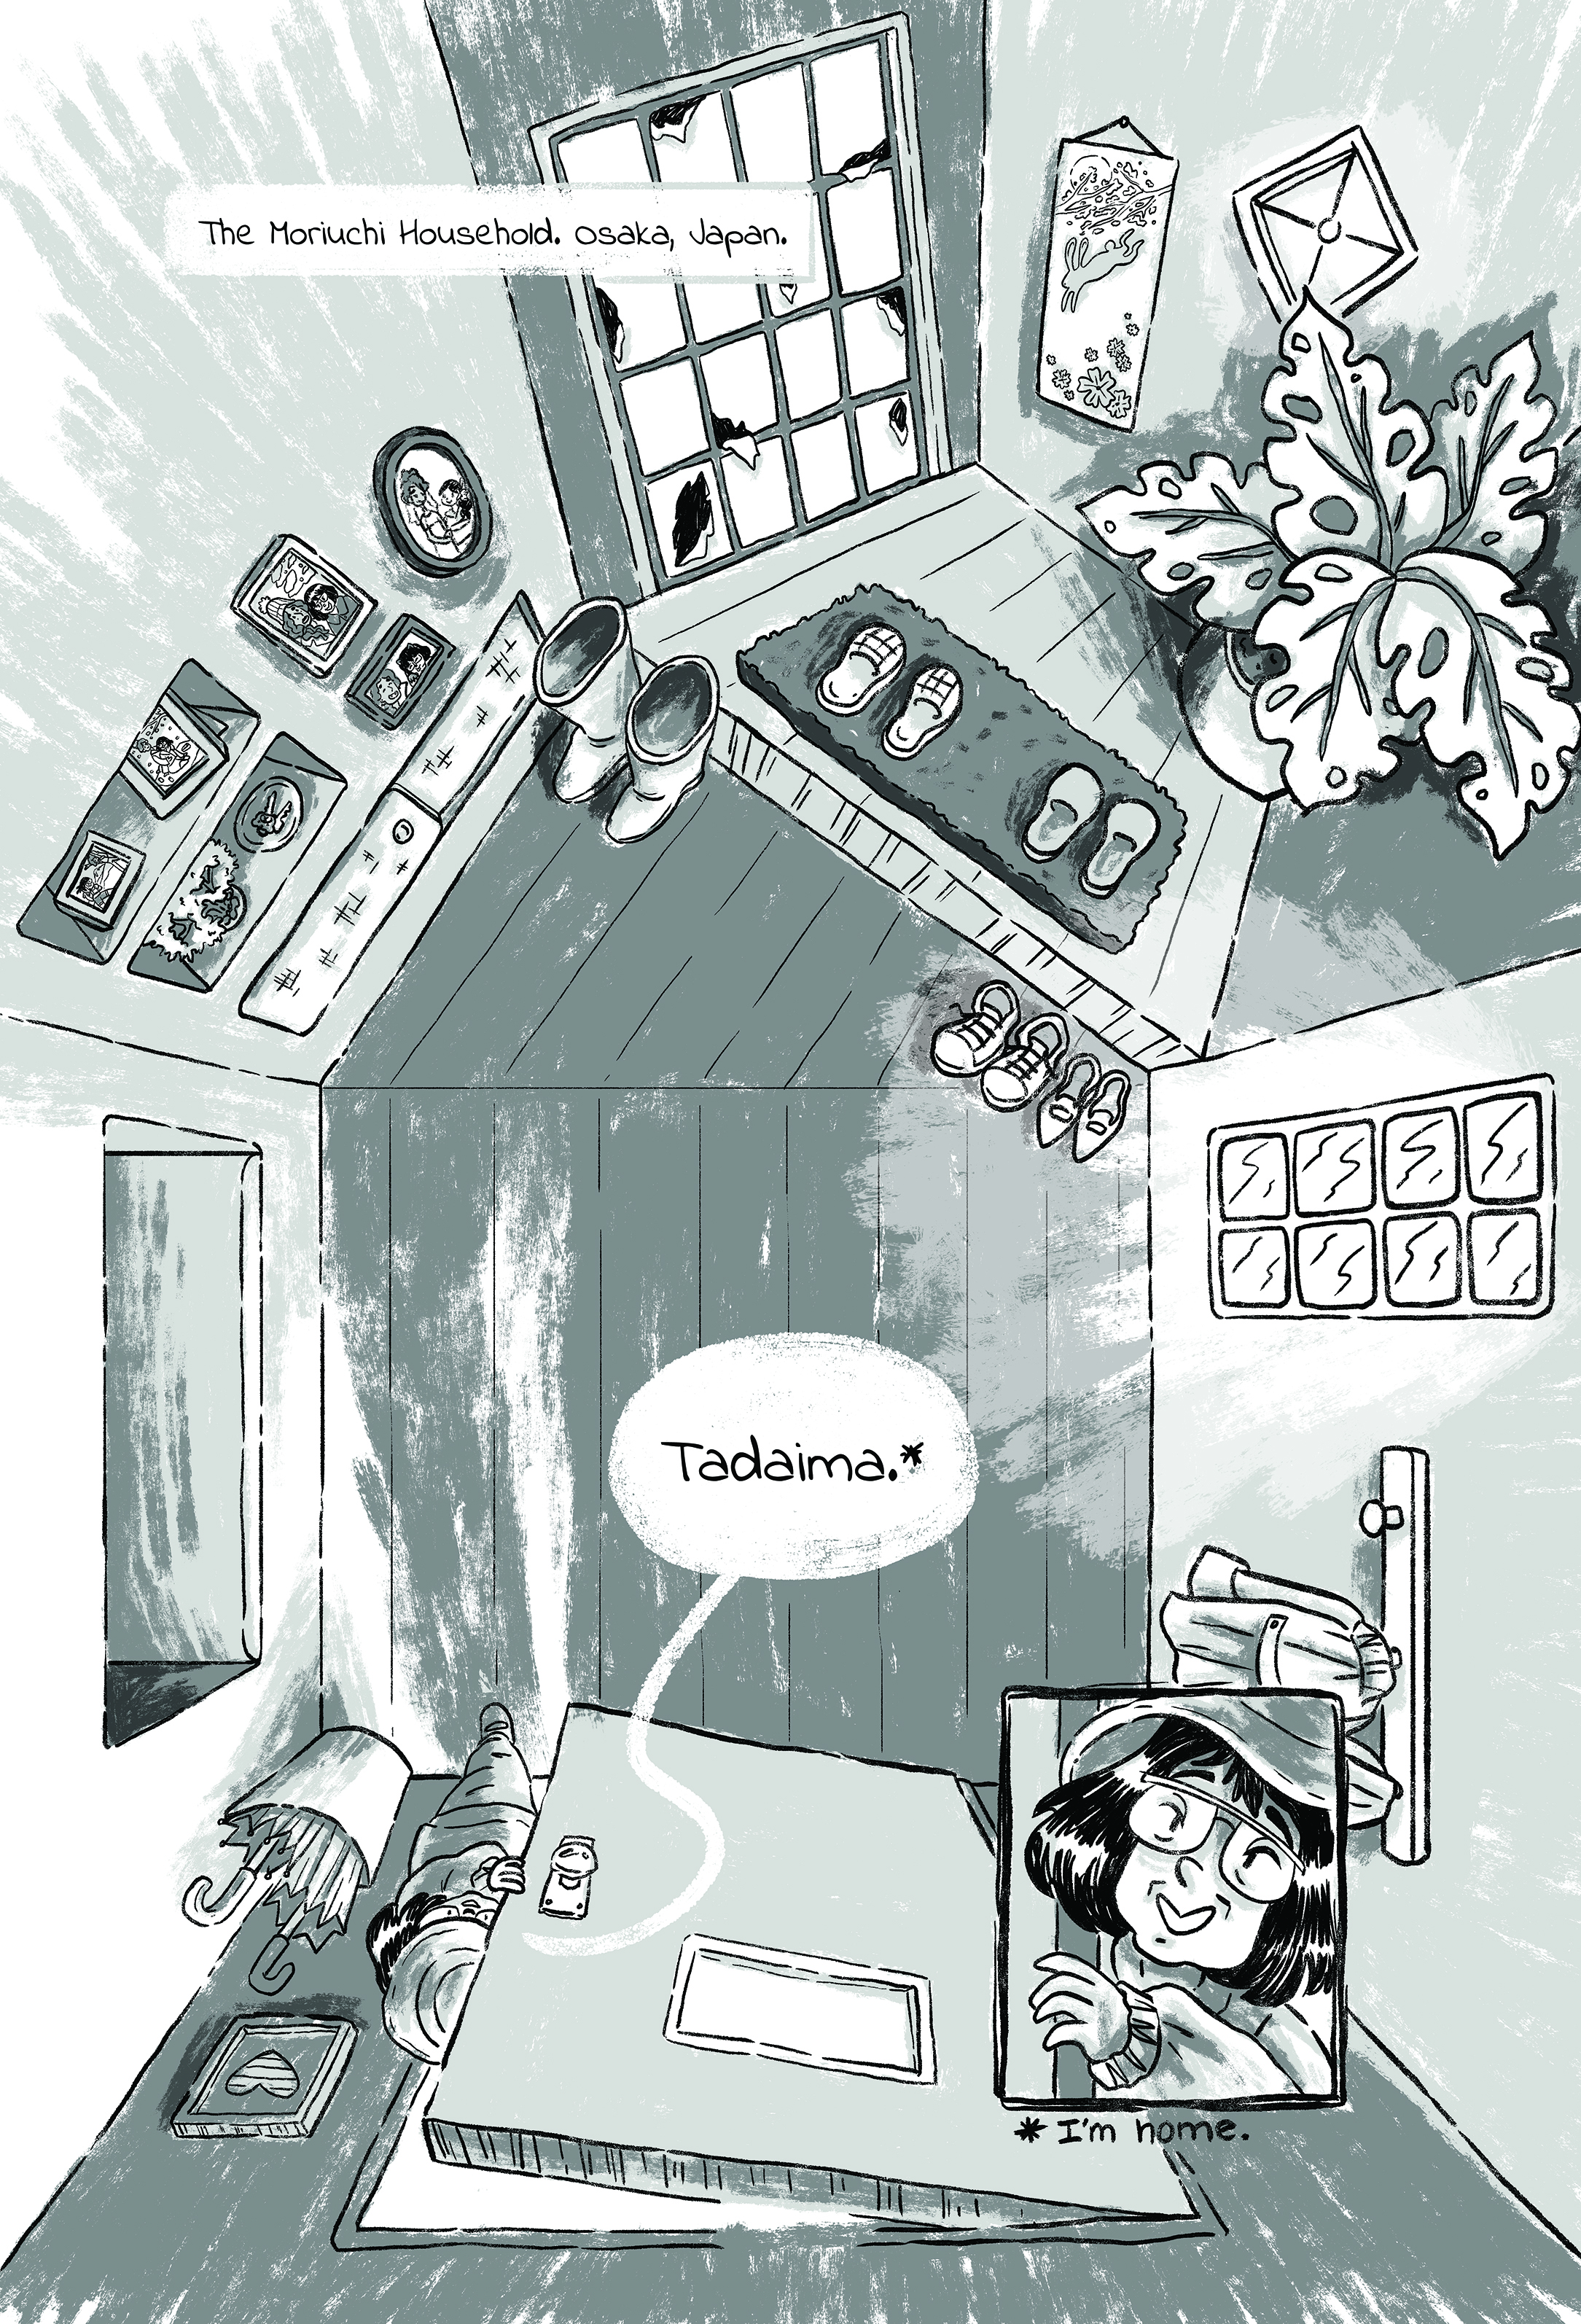 """Okaeri""  Winter 2019  A ghost story set entirely in the  genkan  of a Japanese home, about a couple dealing with loss and reconnection. This short is part of the death positivity  You Died  anthology from Iron Circus Comix.  Art: Jackie Crofts  Script: James F. Wright"